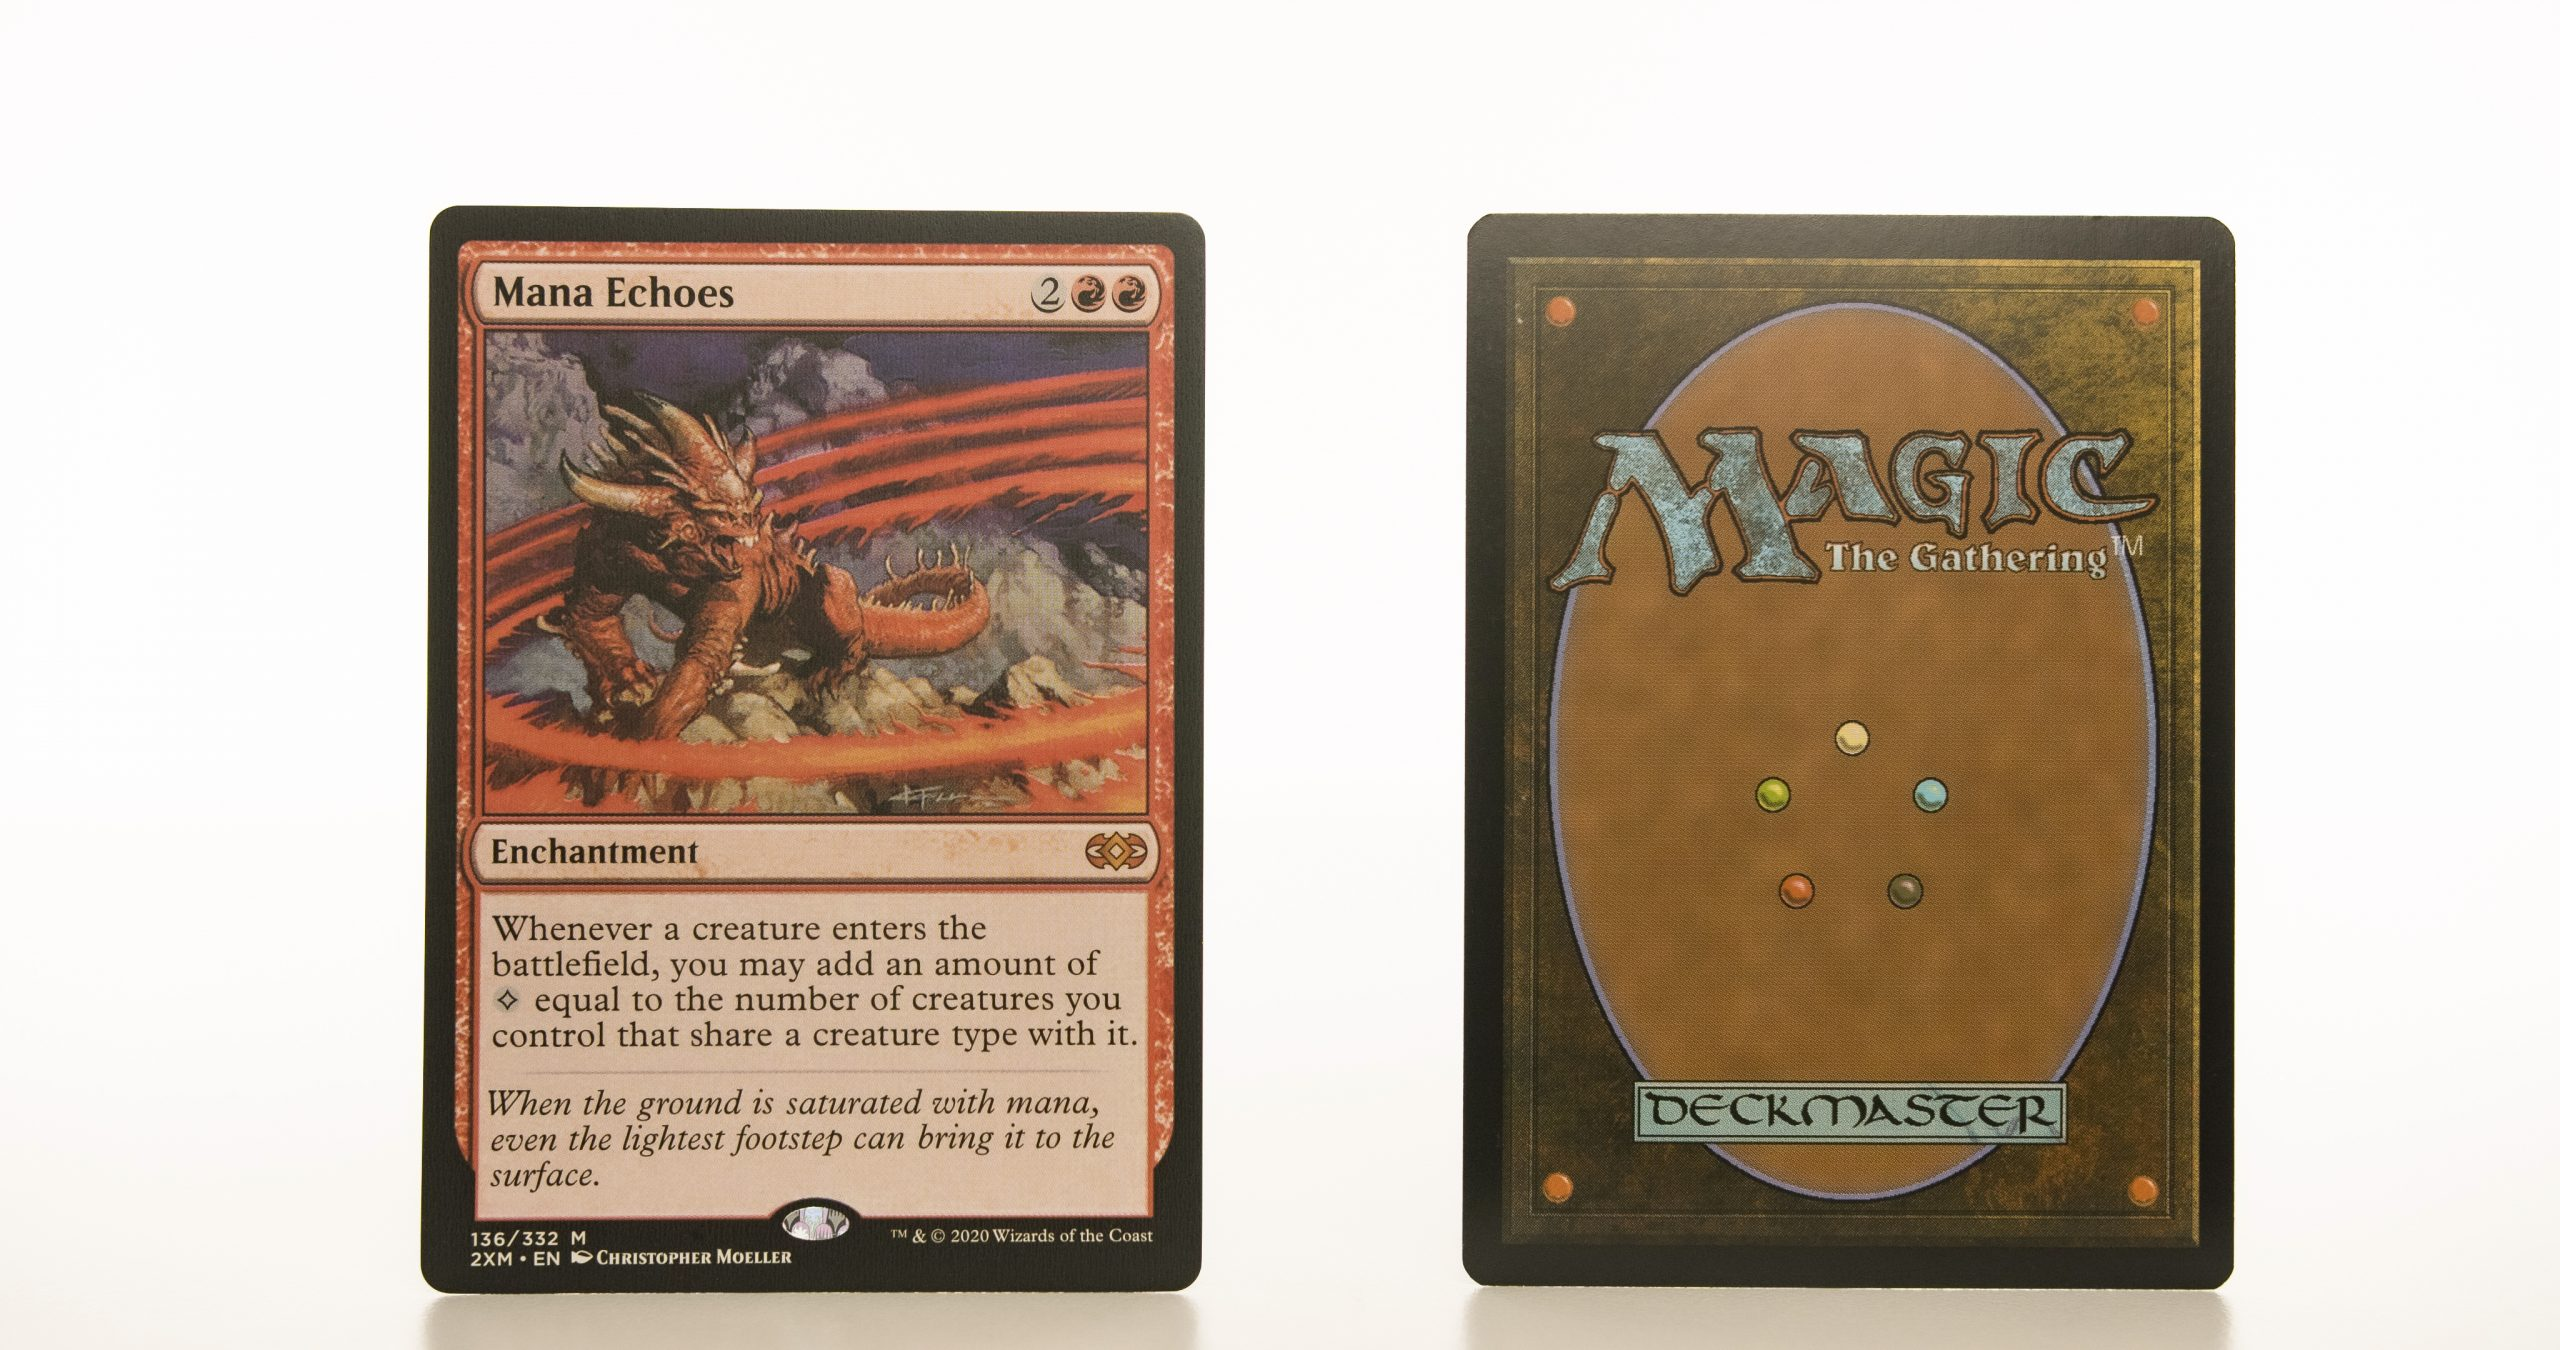 Mana Echoes 2XM Double Masters hologram mtg proxy magic the gathering tournament proxies GP FNM available